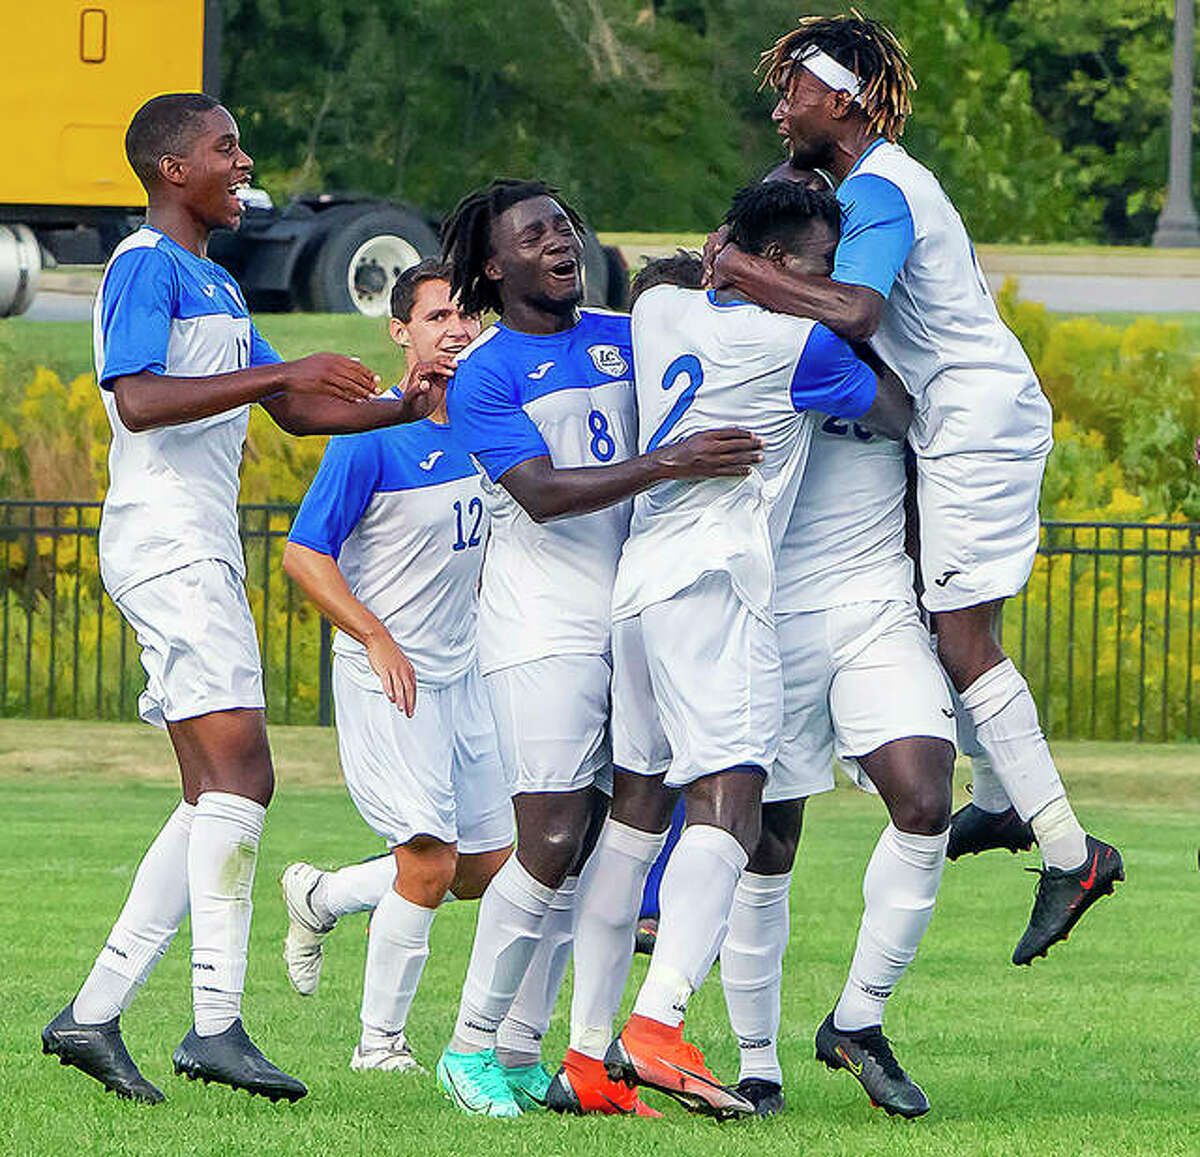 The Lewis and Clark Community college men's soccer team defeated Illinois Central College in overtime Saturday on a goal by Jahiri Lawrence in the 97th minute of play, assuring LCCC of home-field advantage in the postseason Region 24 Tournament.